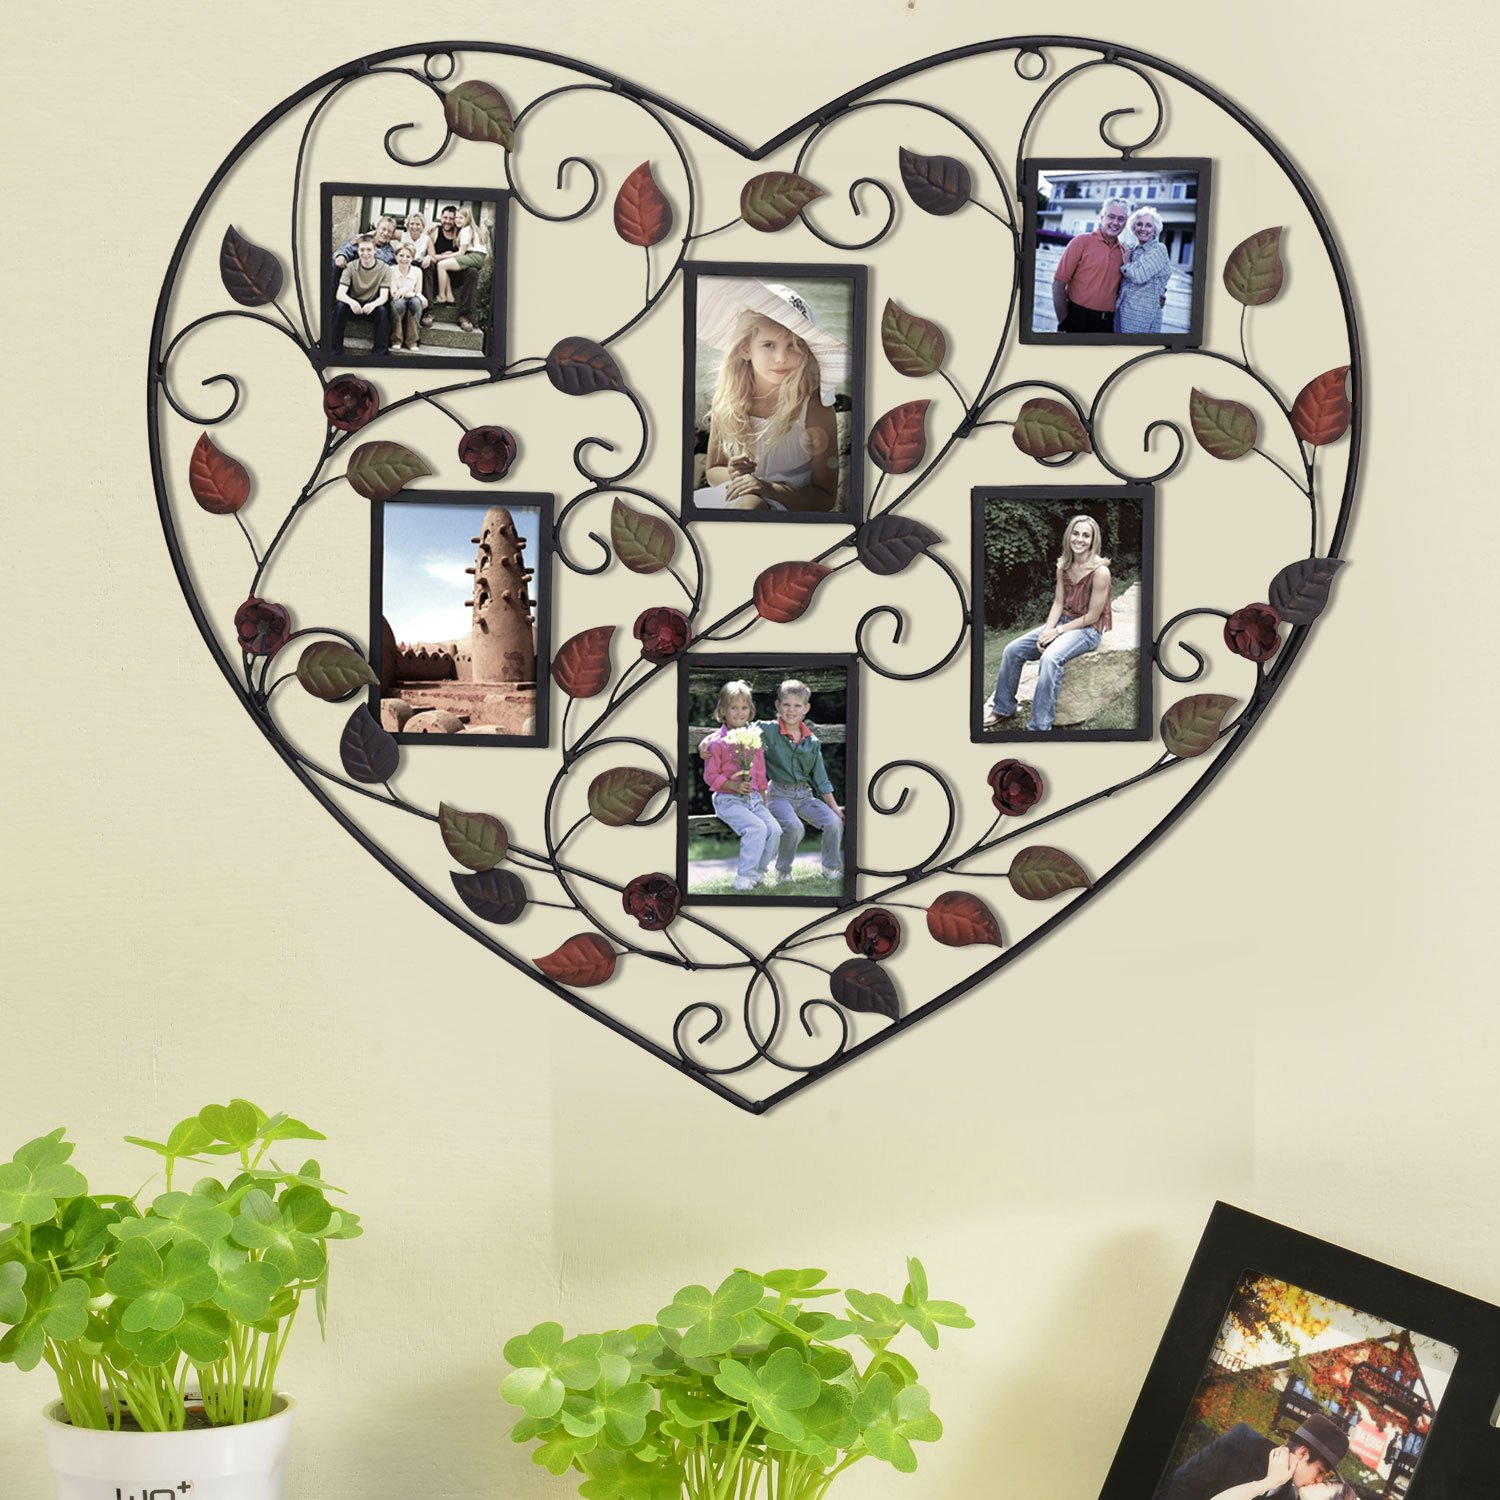 iron wedding anniversary gifts for her 6th wedding anniversary gift Romantic Iron Wedding Anniversary Gifts for Her